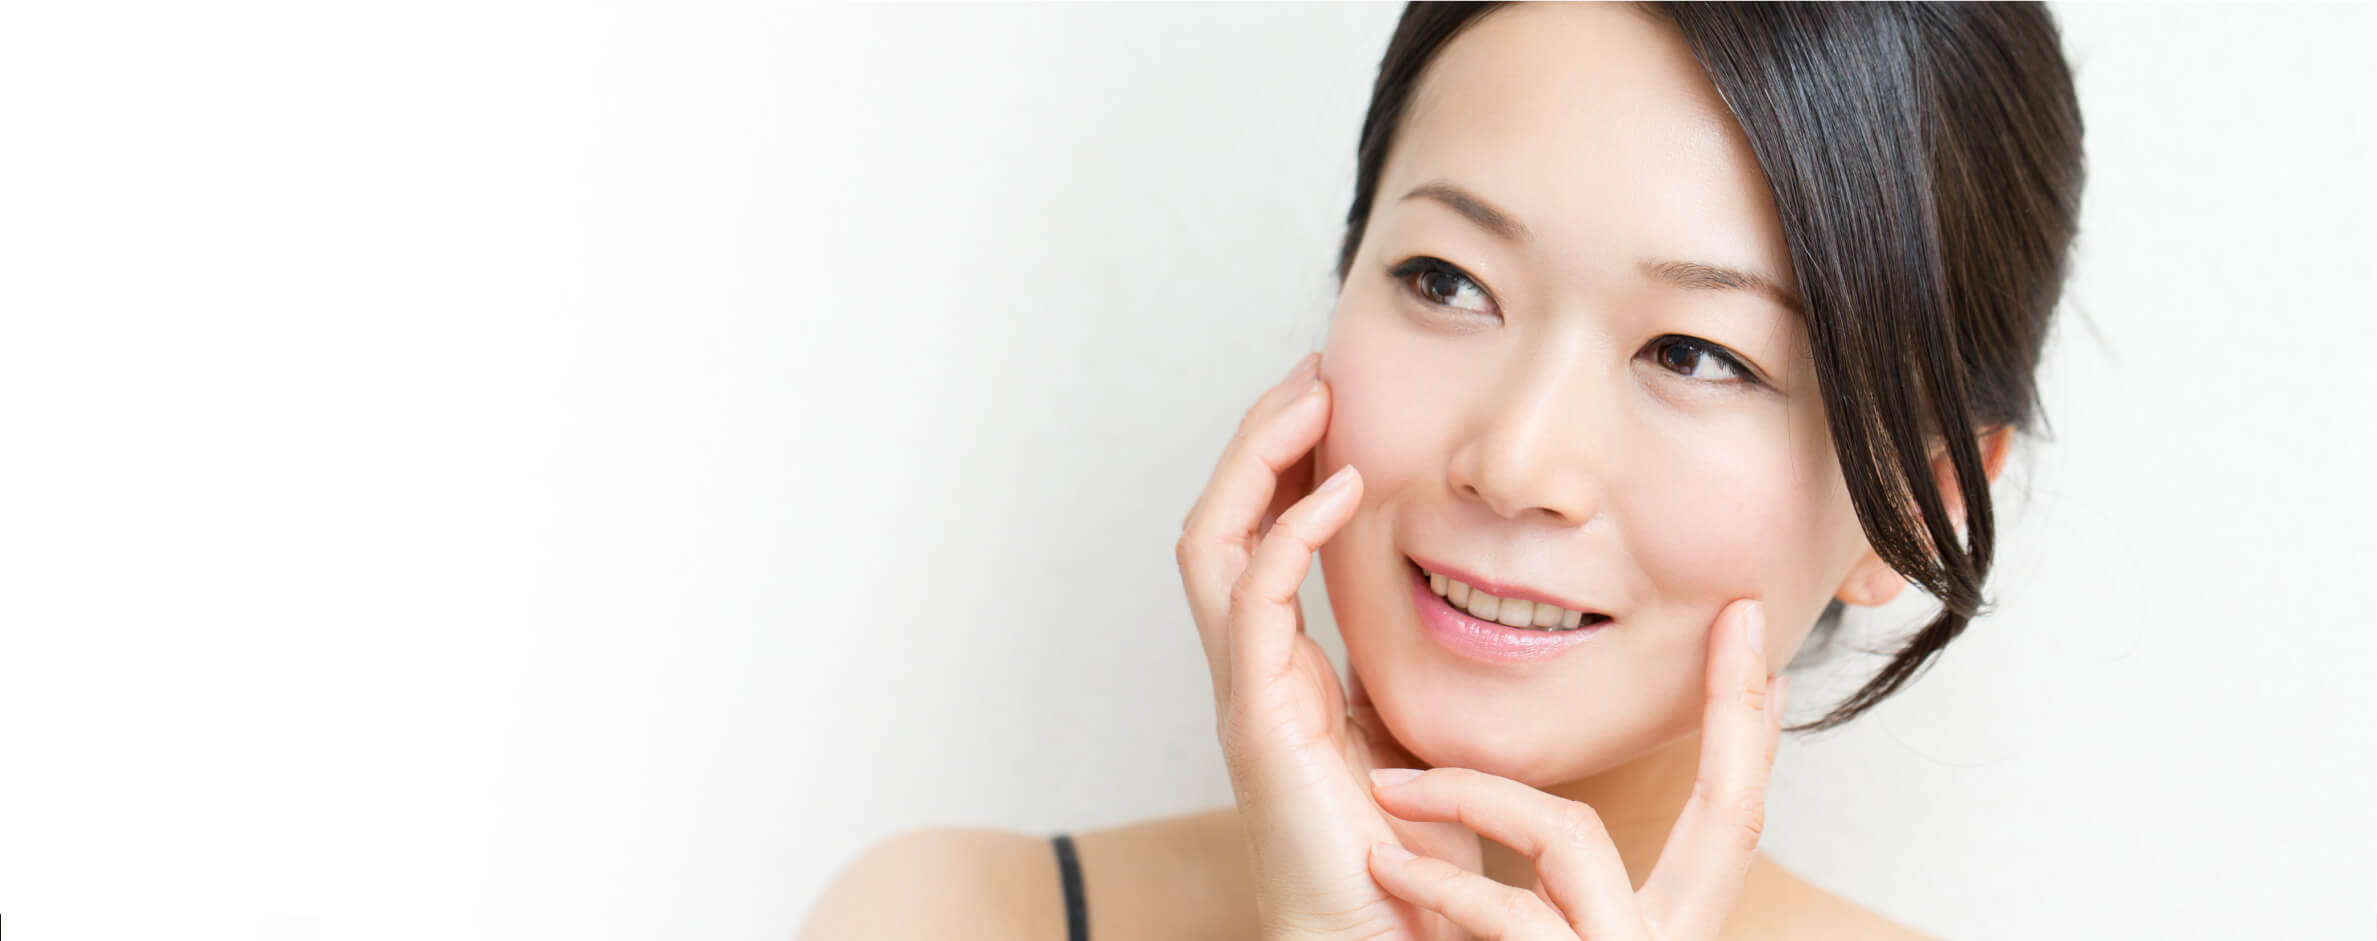 Look Younger and Feel Beautiful in Troy, New York at The Artistry of Face Medical Aesthetics